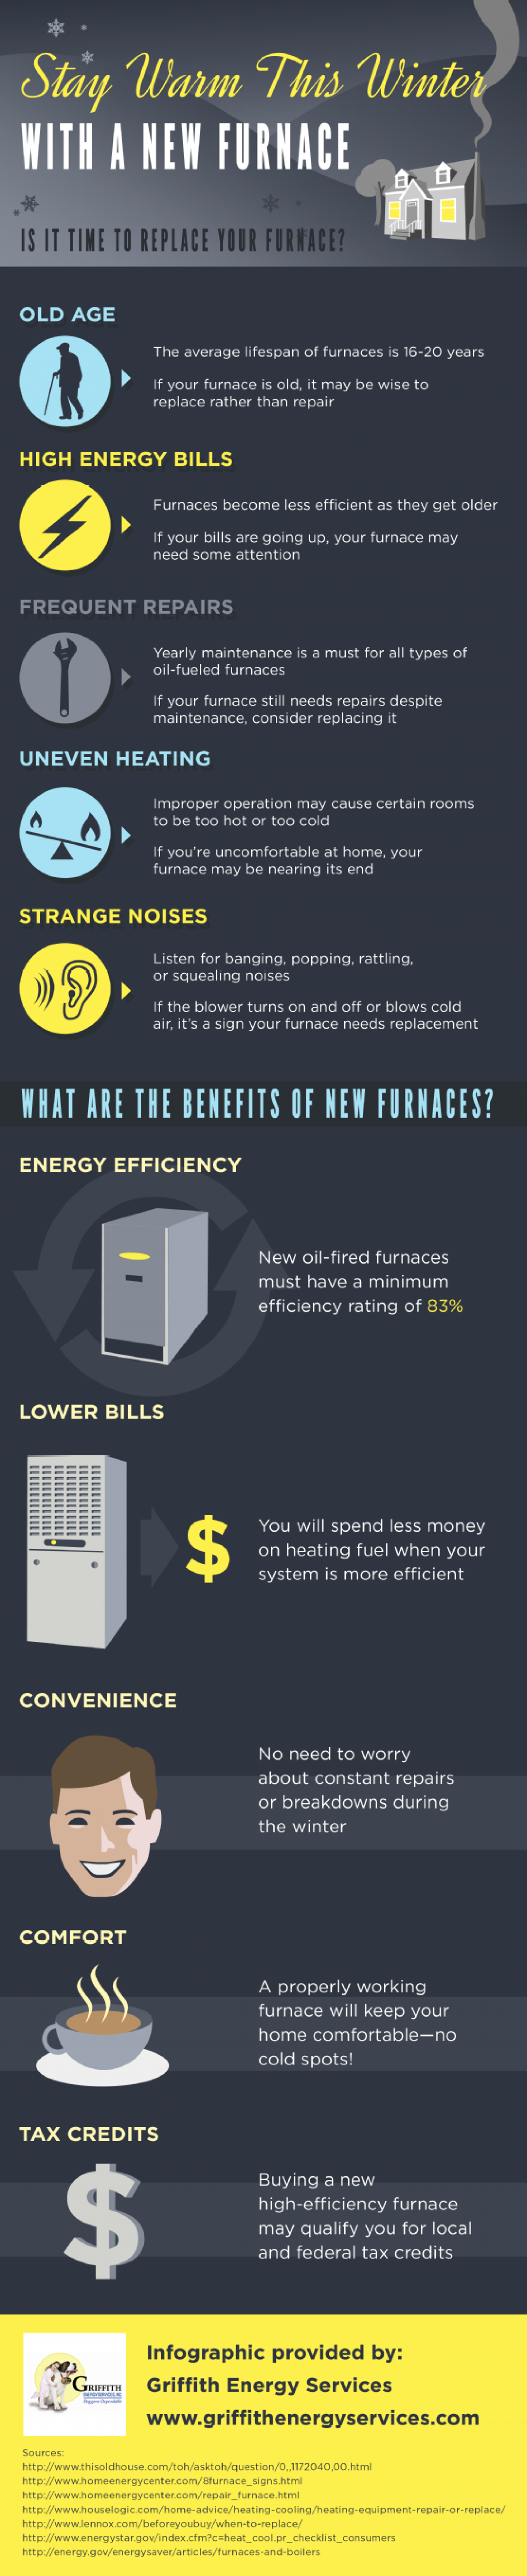 Stay Warm This Winter With a New Furnace Infographic